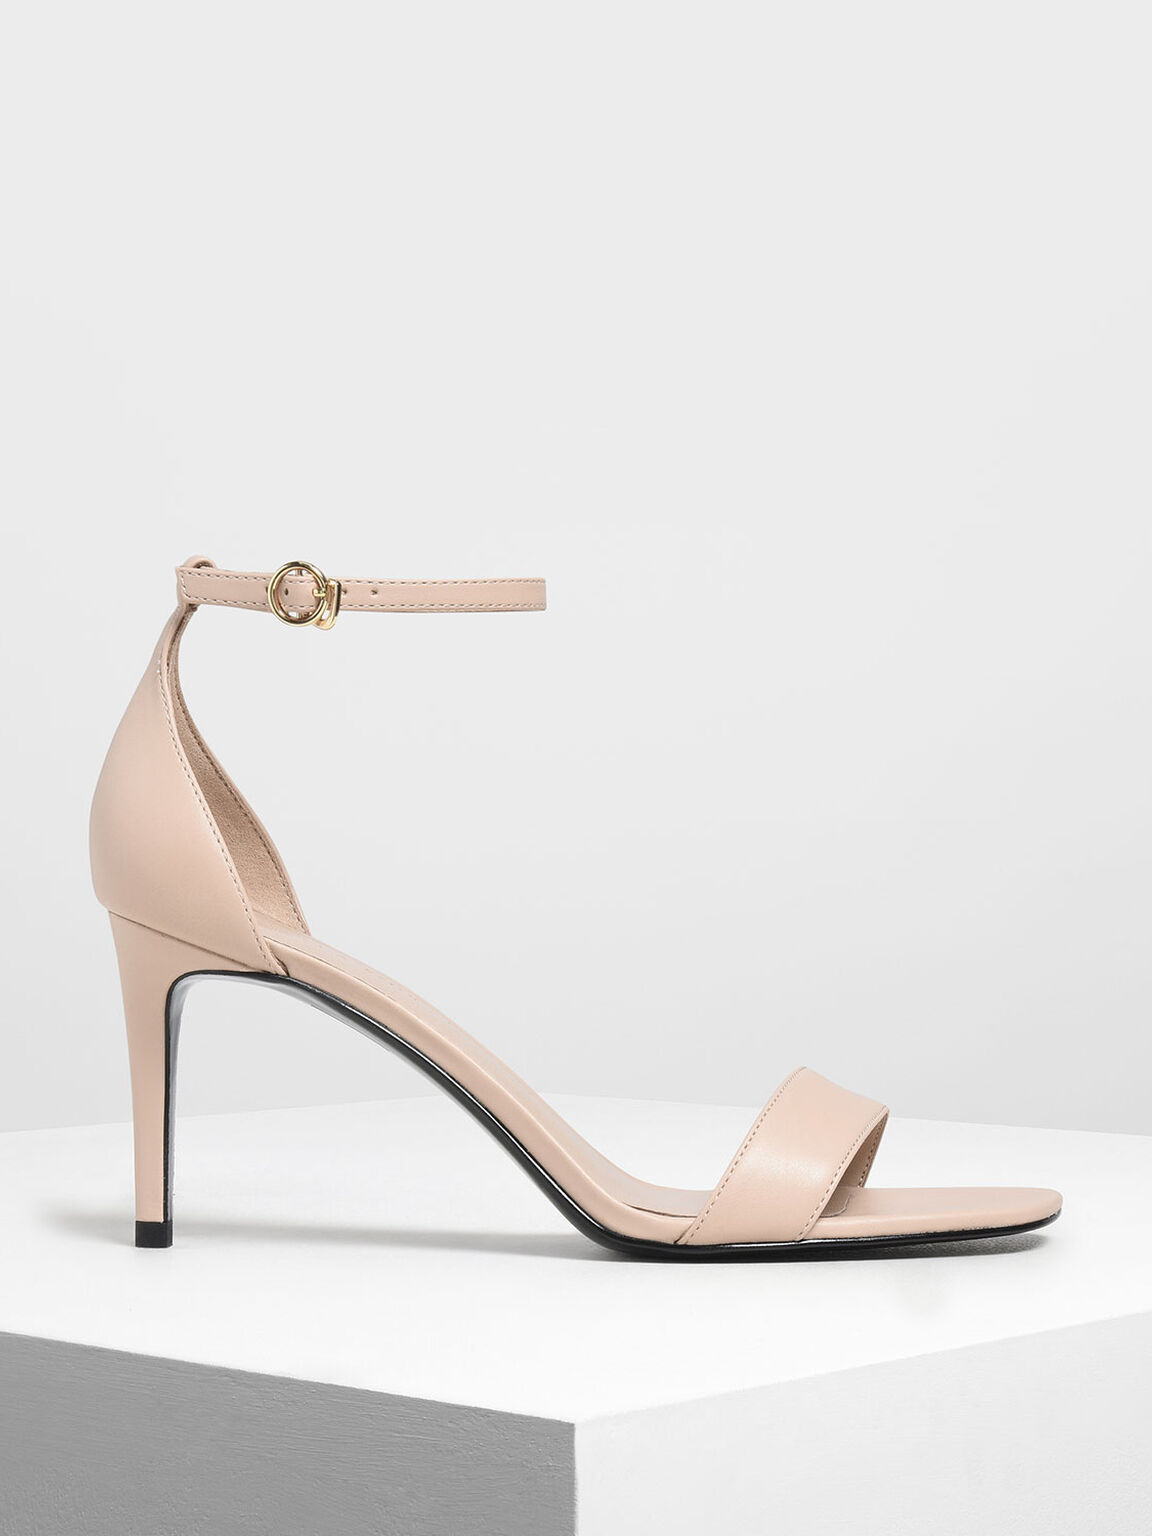 Classic Ankle Strap Heels, Nude, hi-res